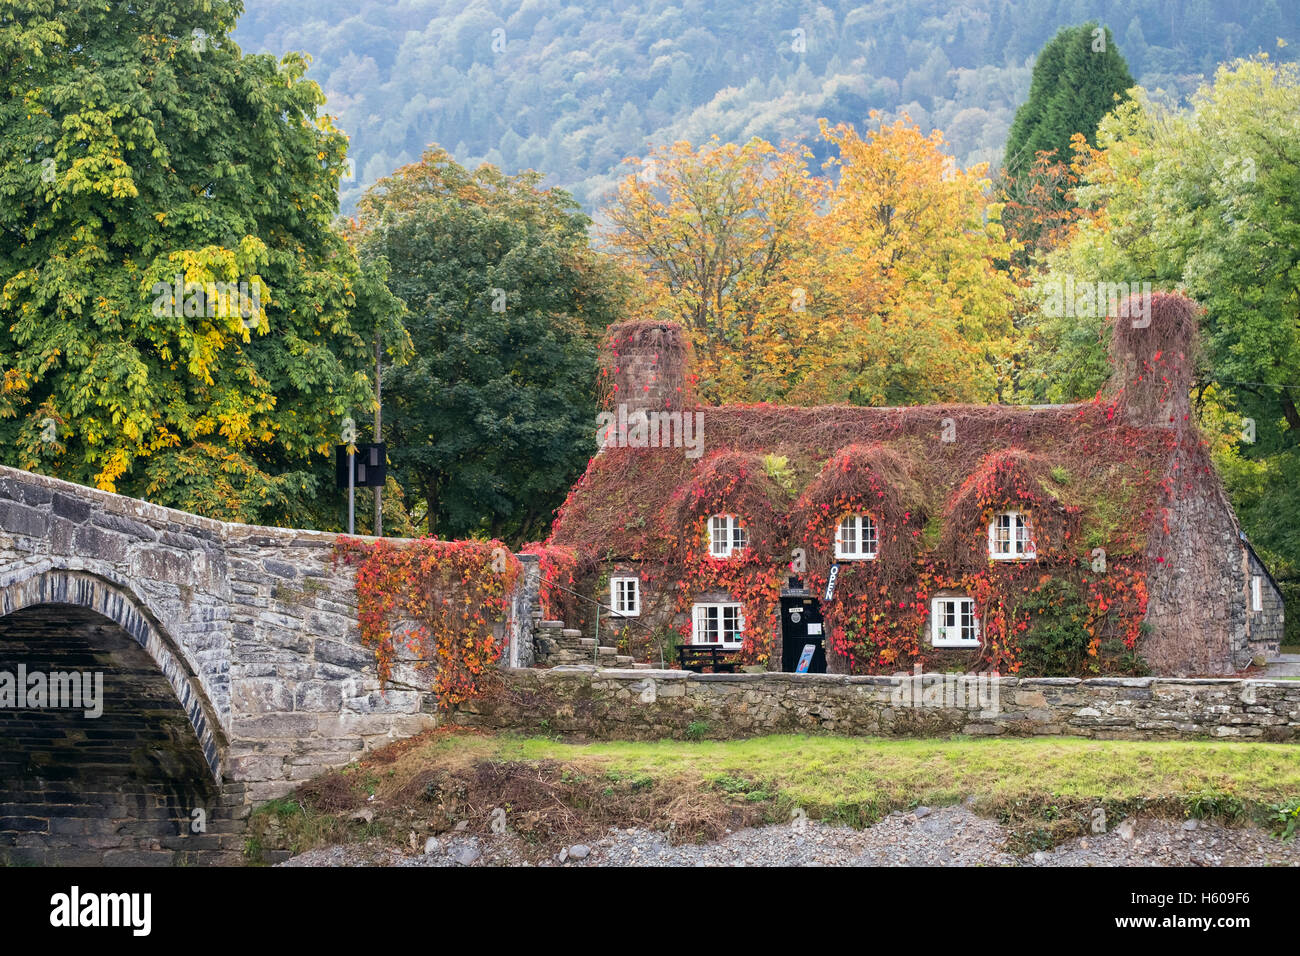 Tu Hwnt I'r Bont Tearooms in picturesque cottage with red Virginia Creeper by Pont Fawr bridge and Afon Conwy River Stock Photo